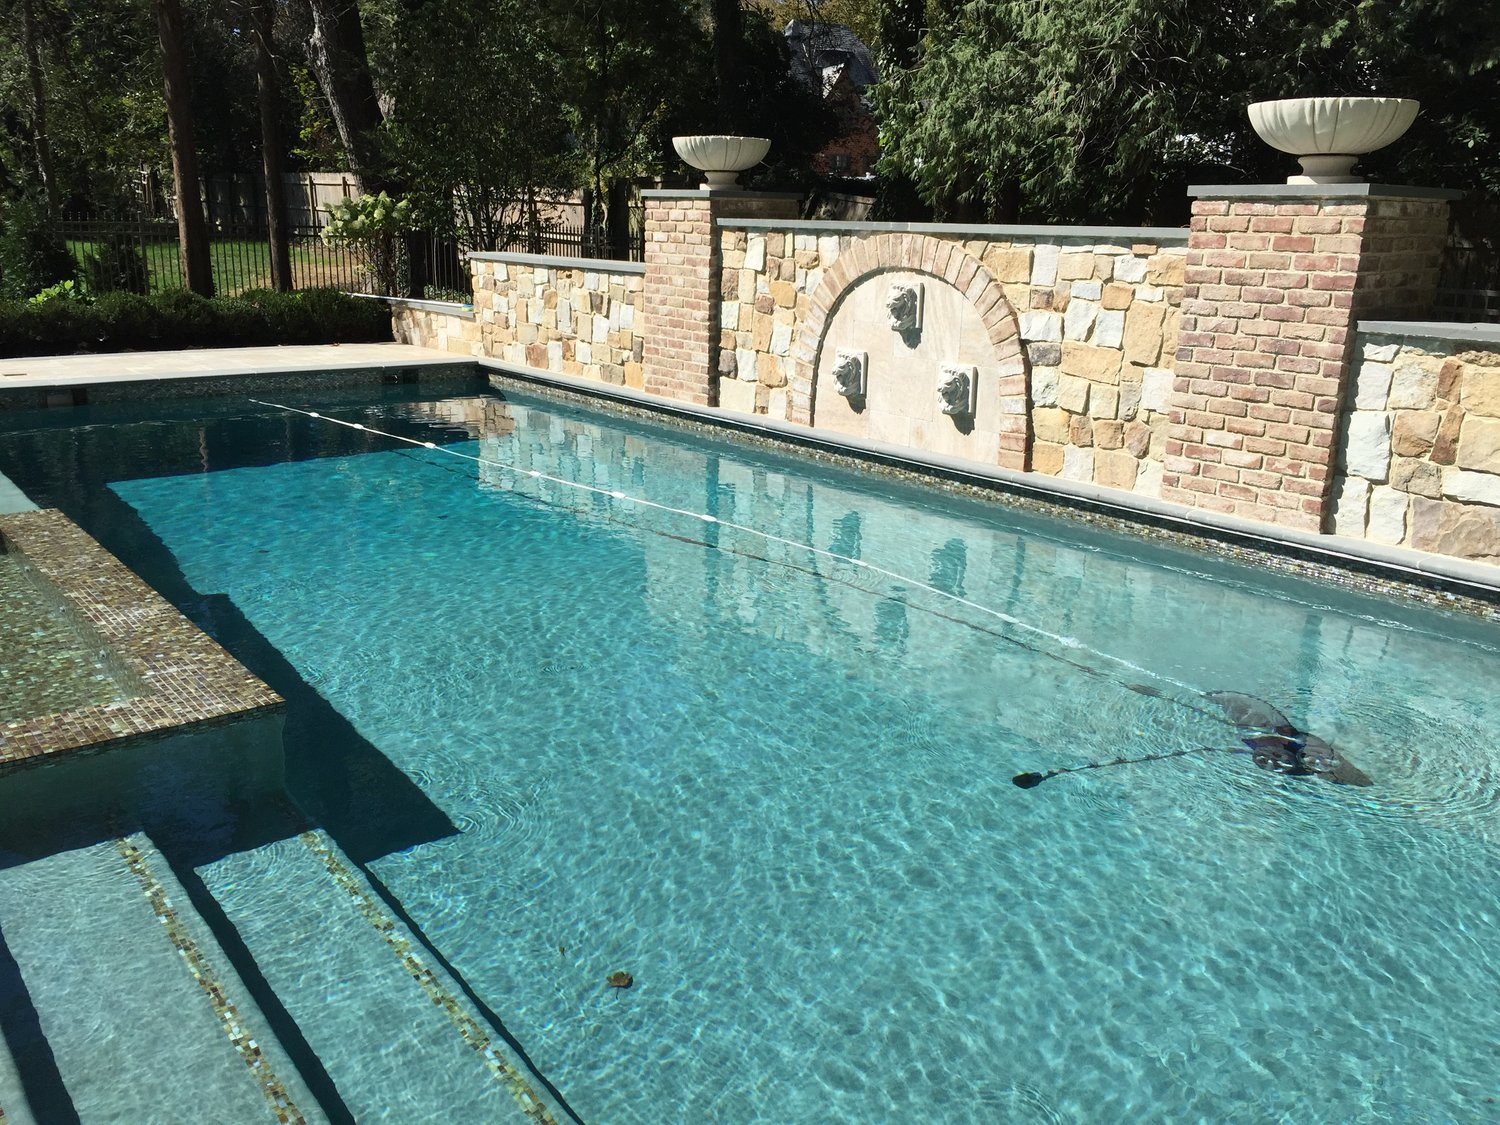 This gorgeous in-ground pool features glass tile, gas fire bowls, LED bubbler fountains and more.